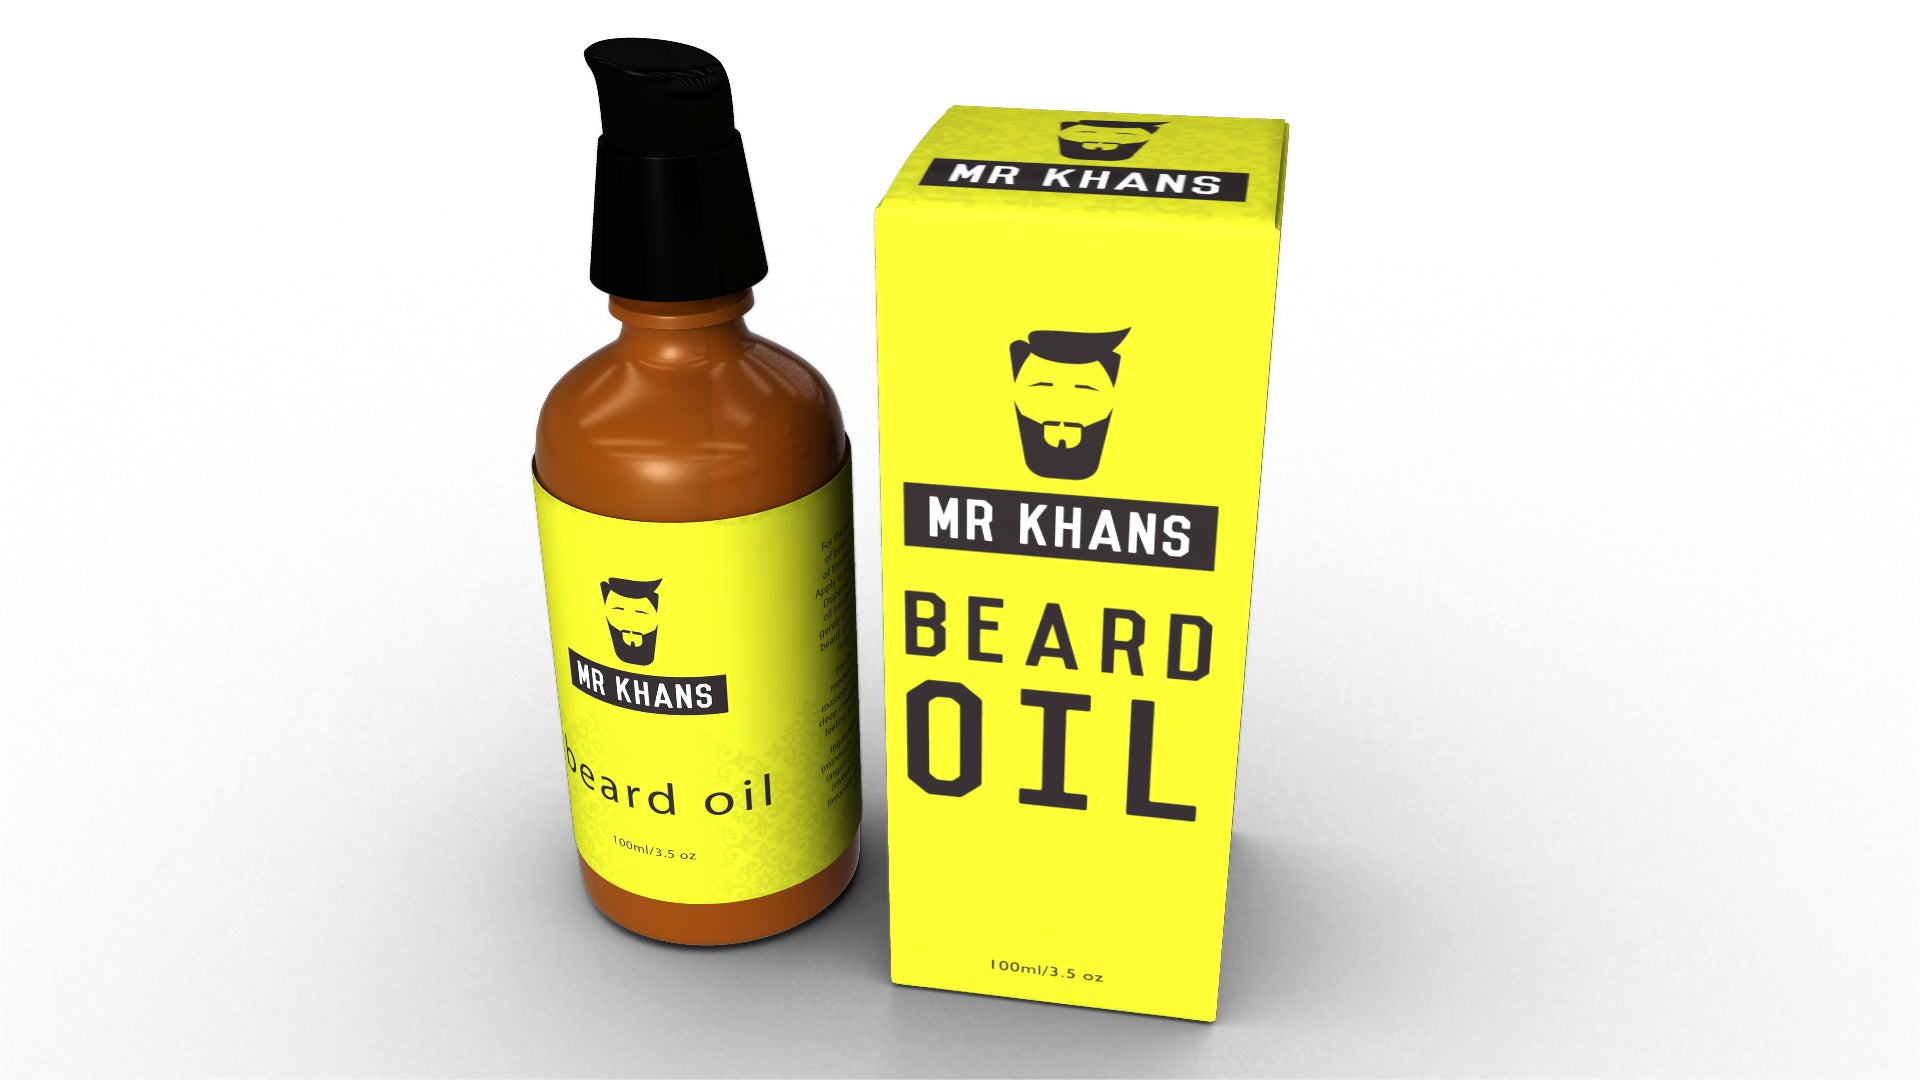 Mr Khans Beard Oil 100ml, Hair Styling Products by My Wholesale Warehouse